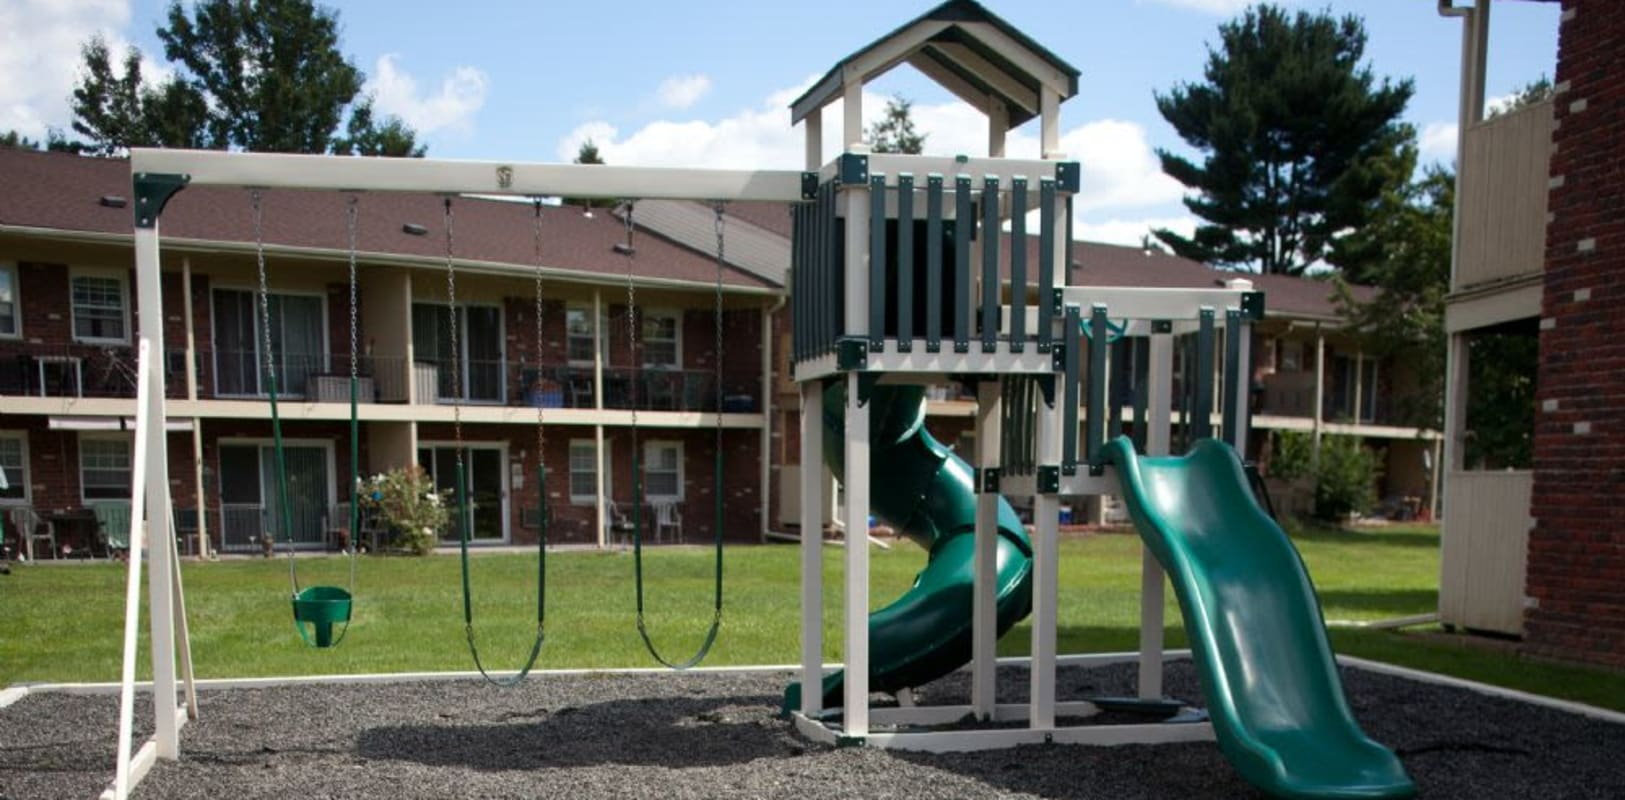 Community playground at Wynbrook West Apartments in East Windsor, New Jersey